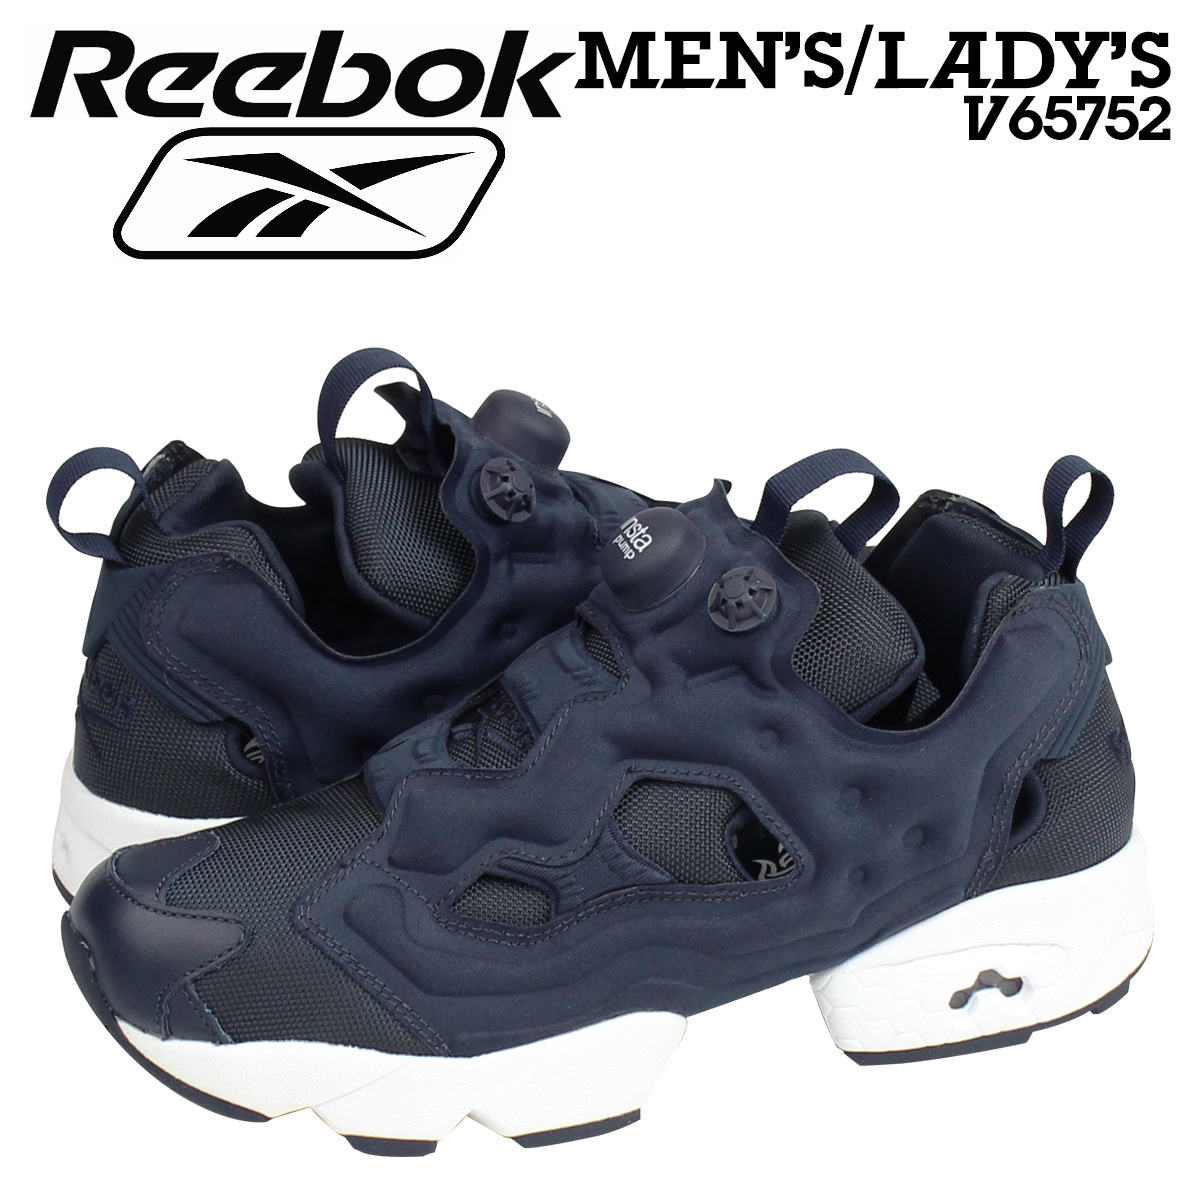 5c403a4eb4e Buy reebok online shop   OFF32% Discounted